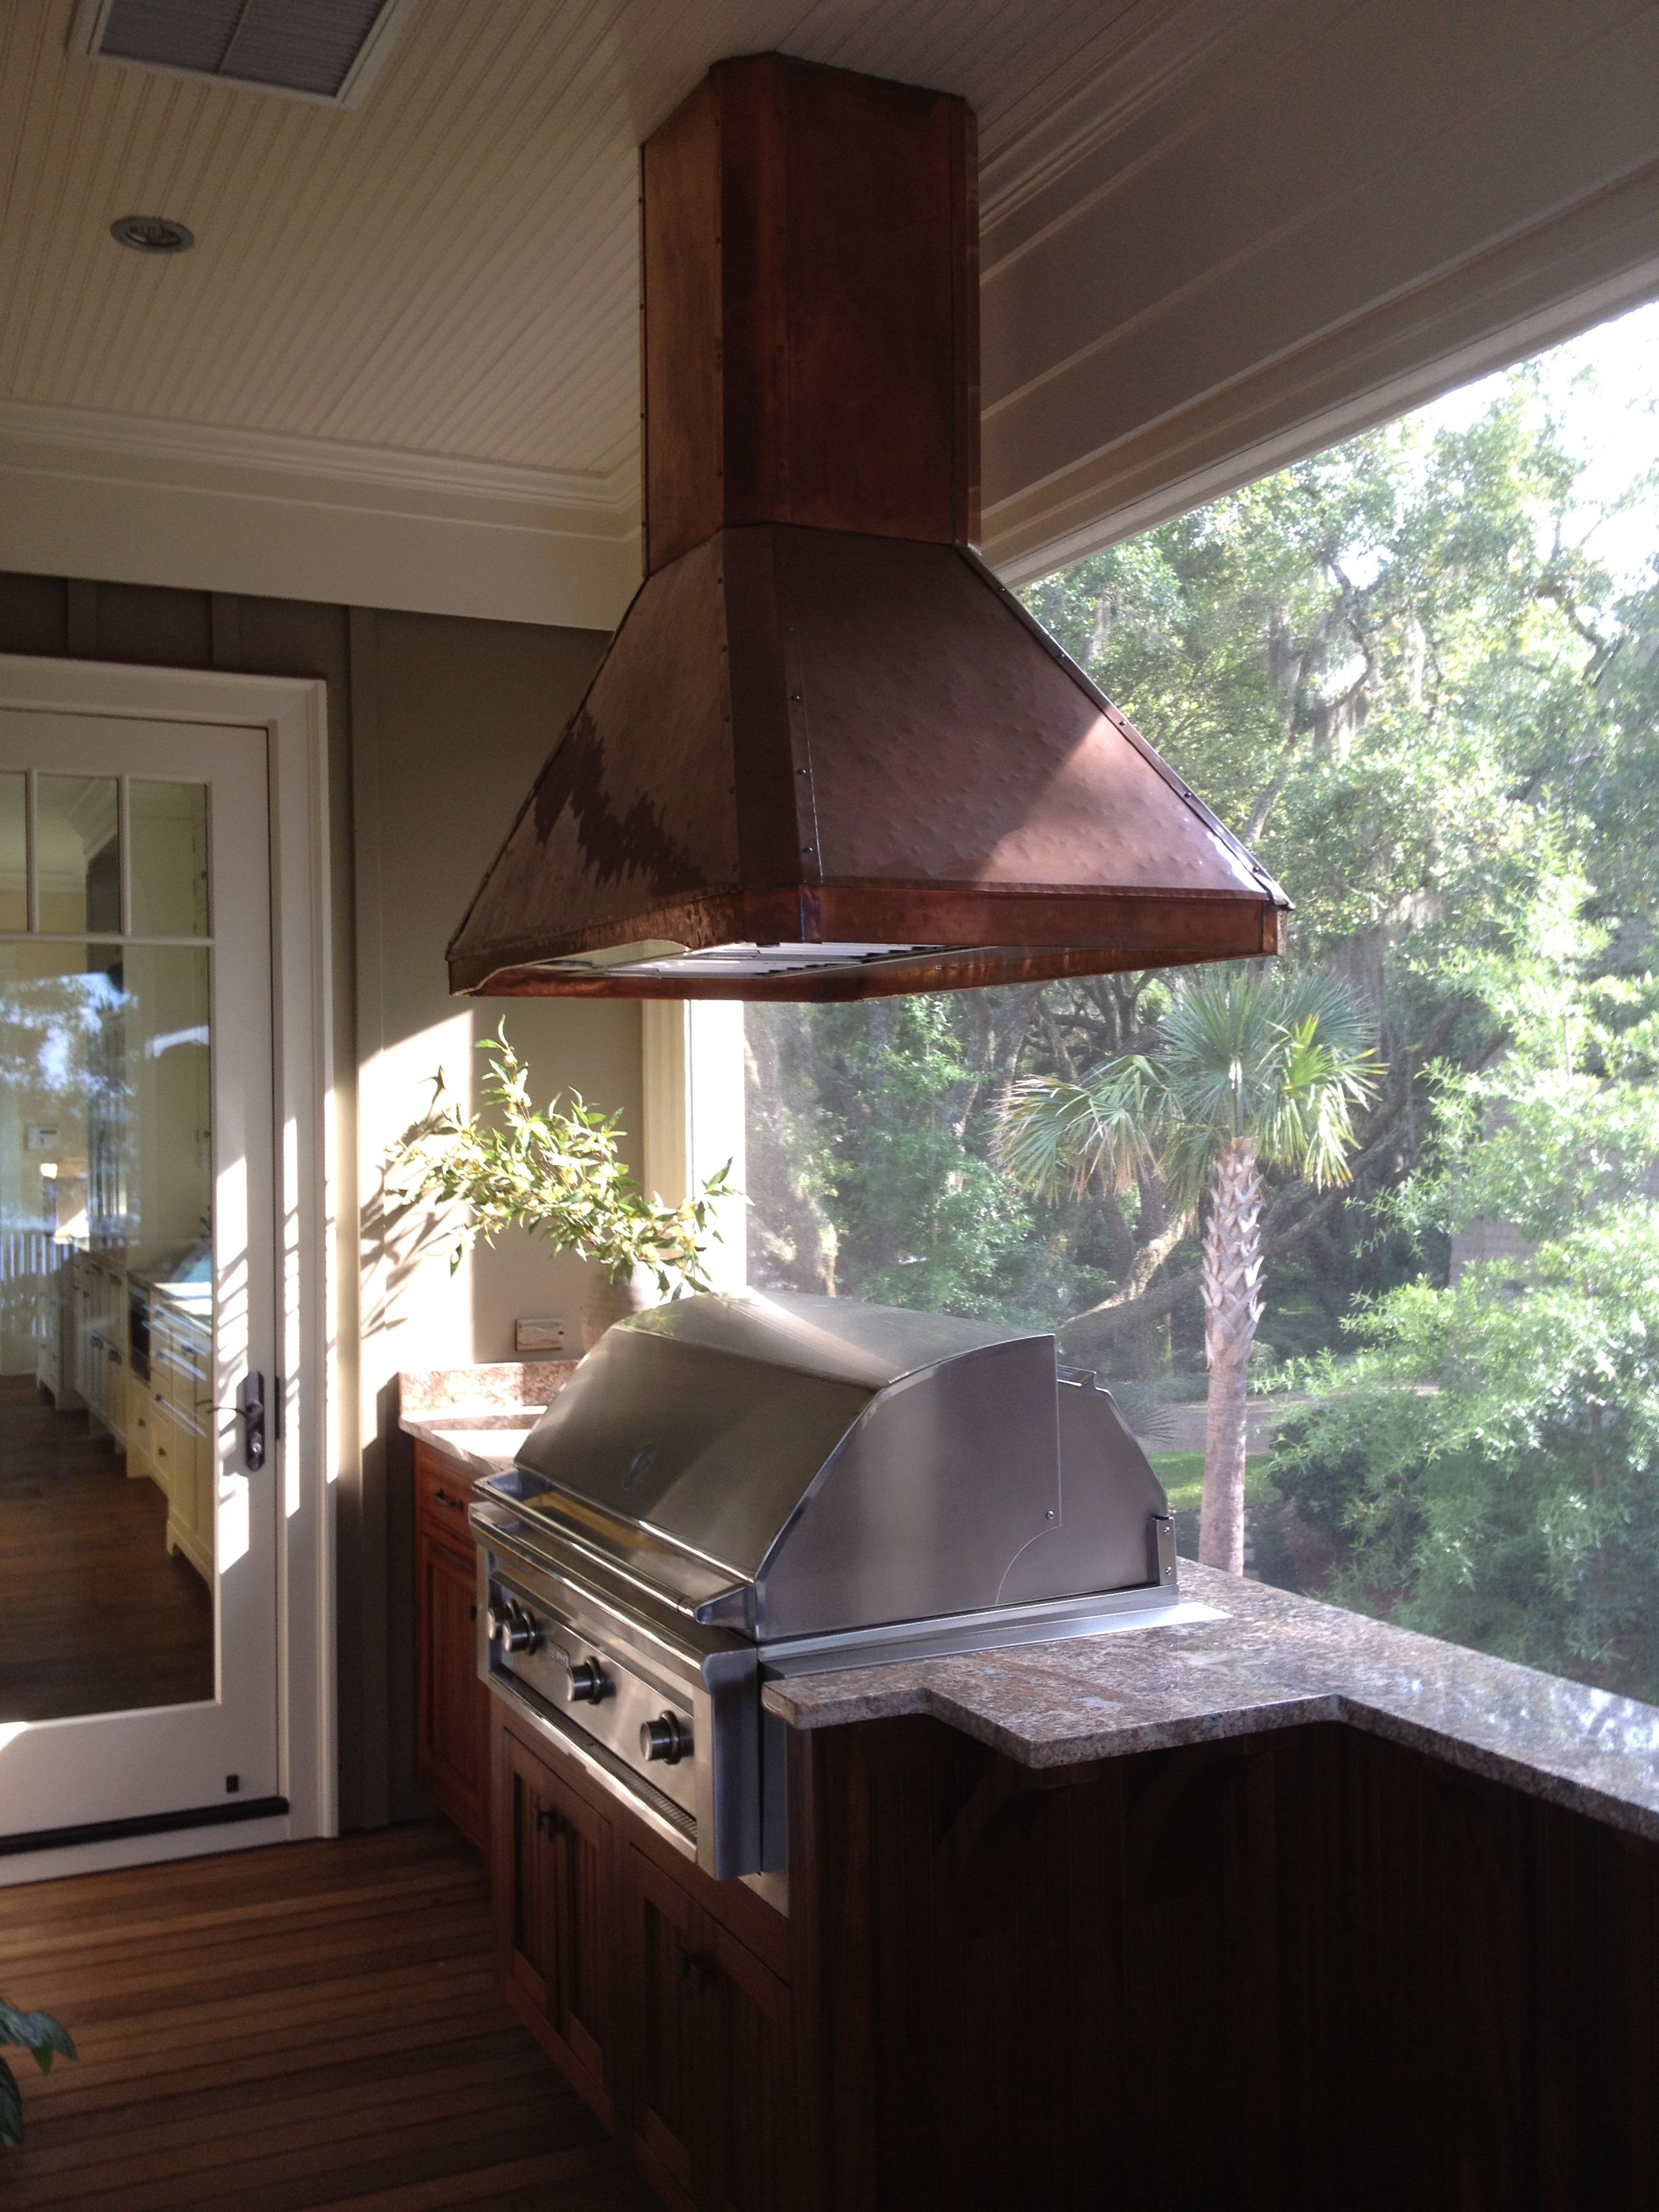 Copper Hood Vent Patio Inspiration Backyard Kitchen